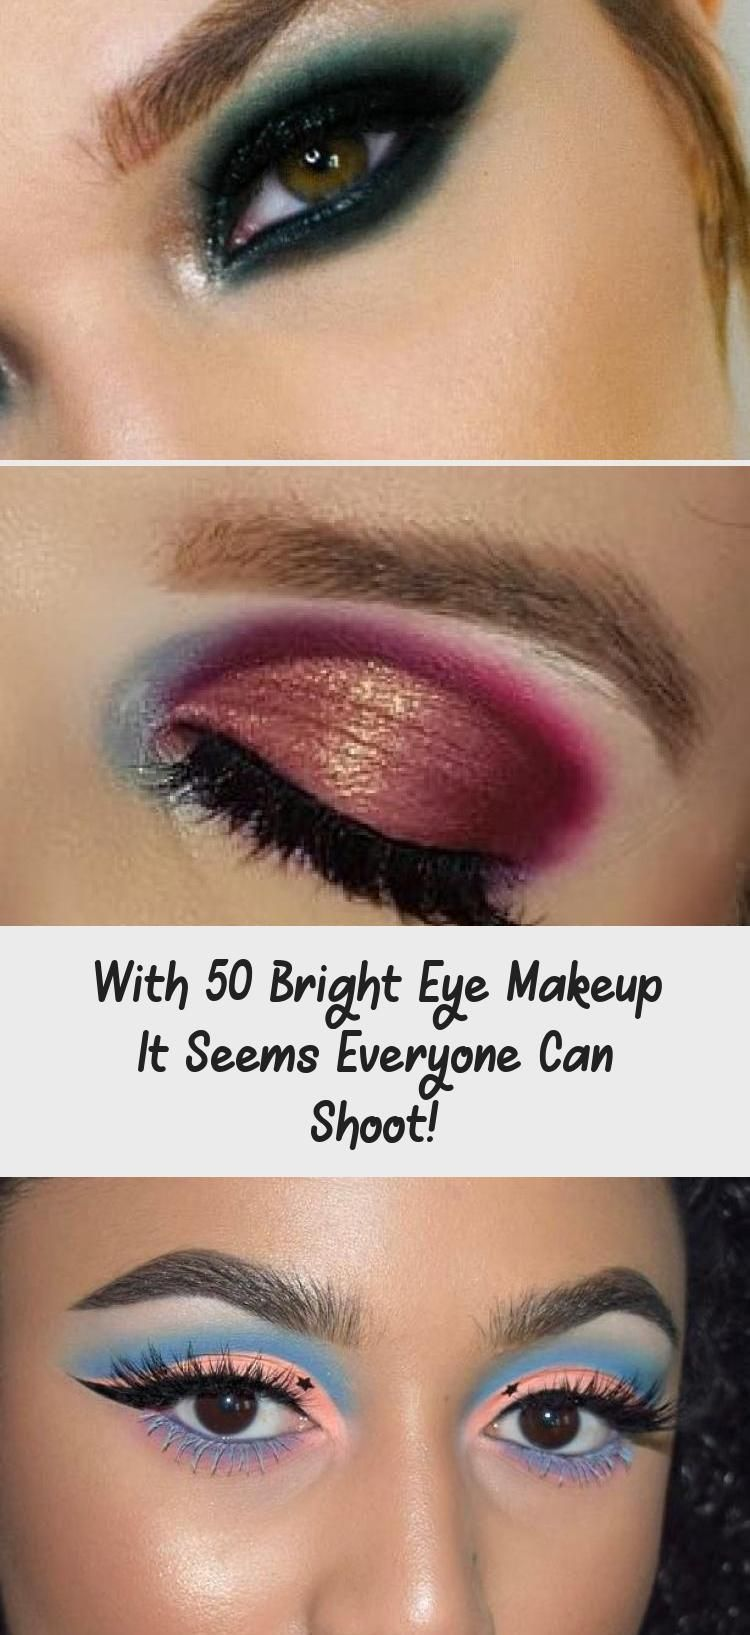 With 50 Bright Eye Makeup It Seems Everyone Can Shoot Pinokyo